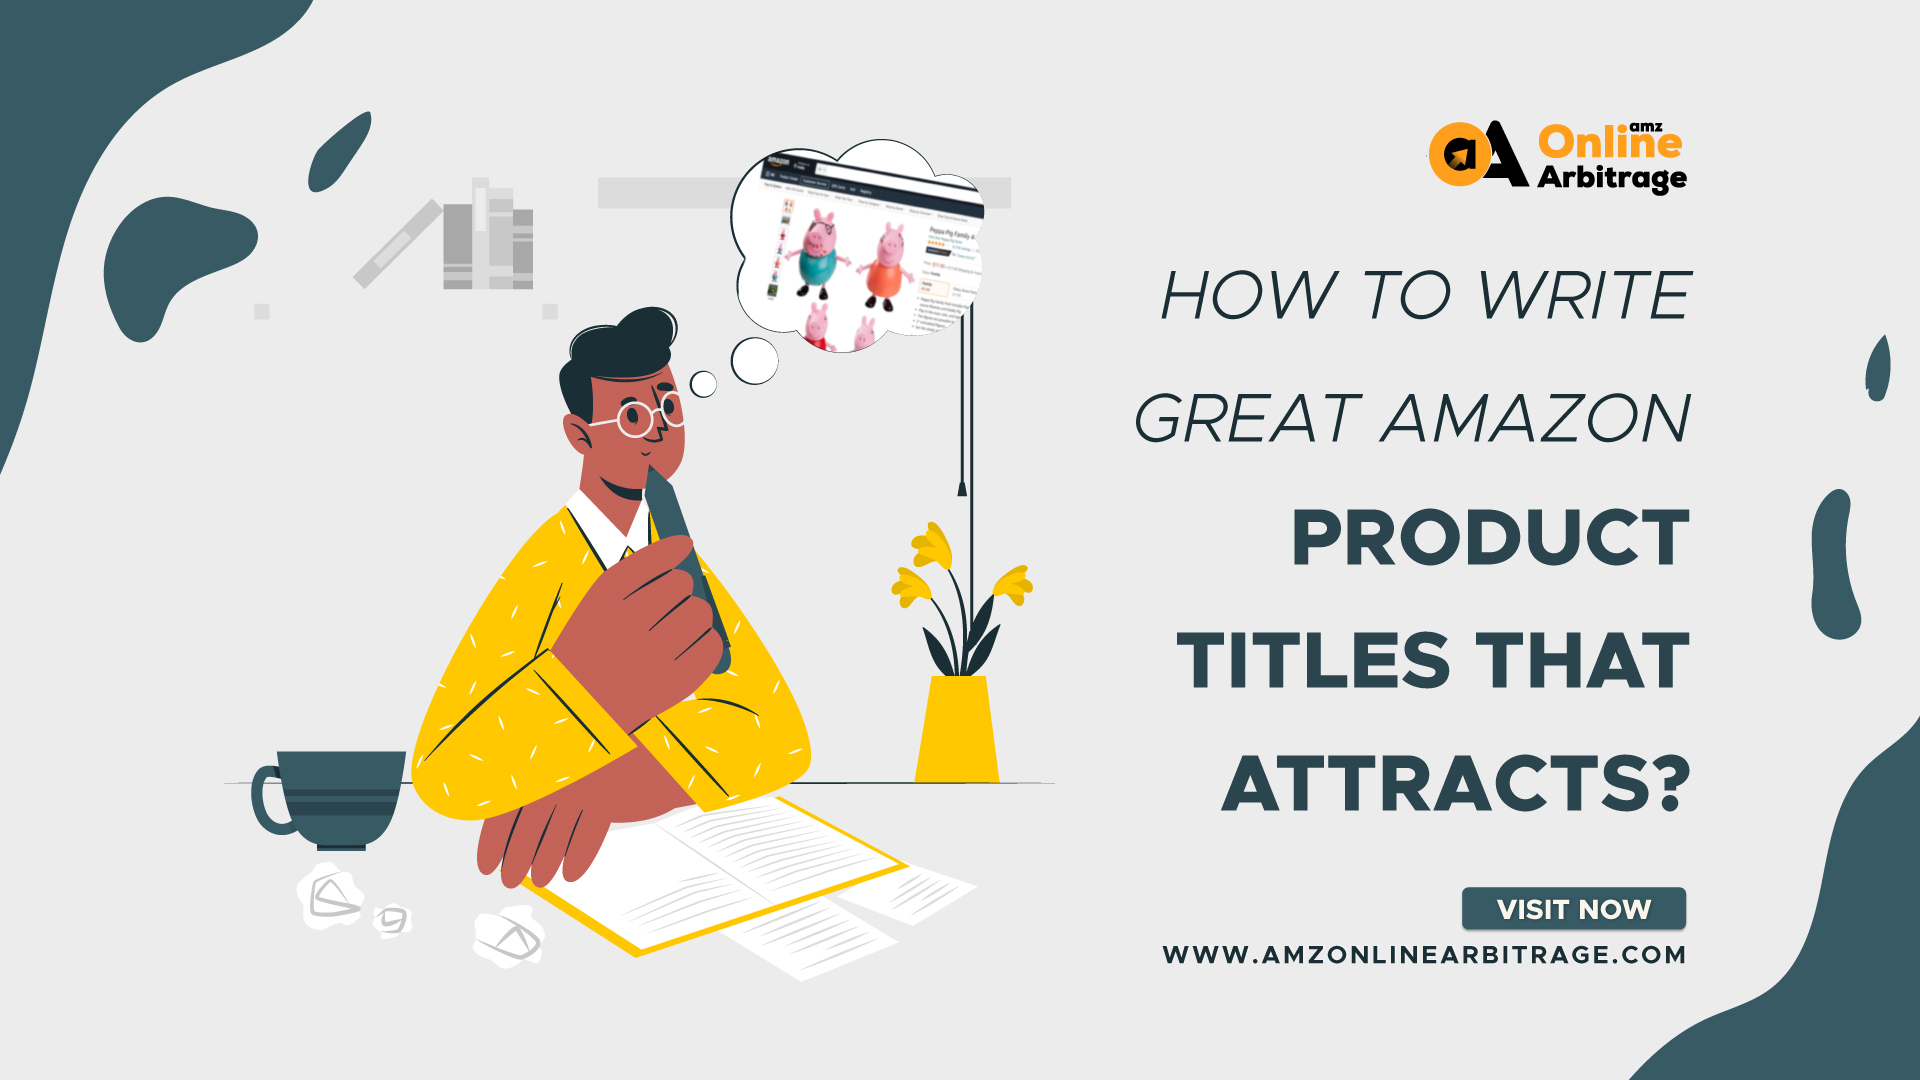 HOW TO WRITE GREAT AMAZON PRODUCT TITLE THAT ATTRACTS?